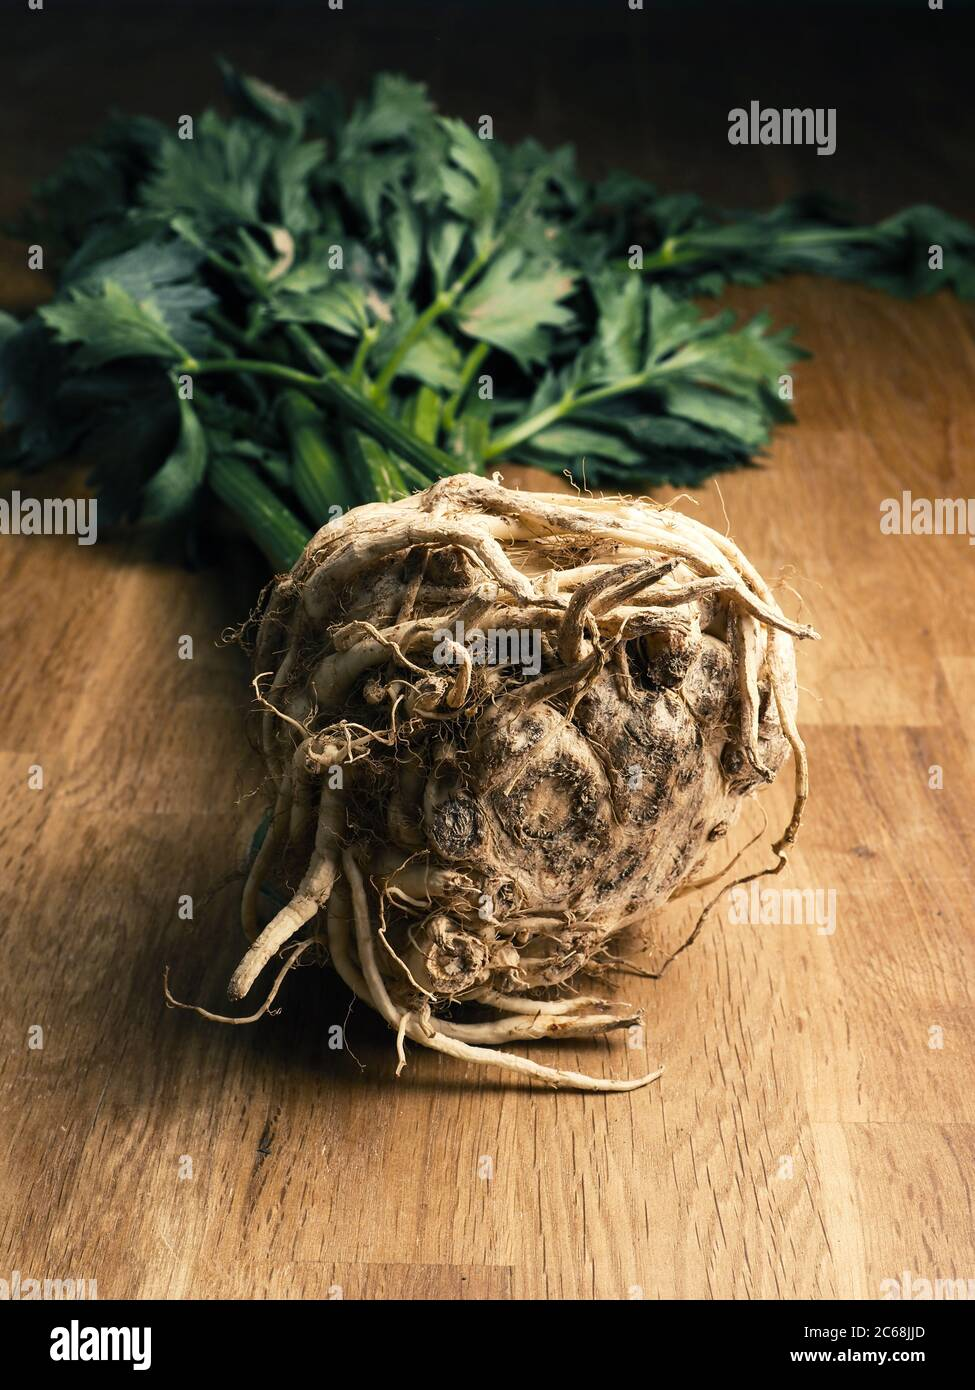 A sandy celeriac on a rustic oak kitchen table, concept for natural healthy eating Stock Photo